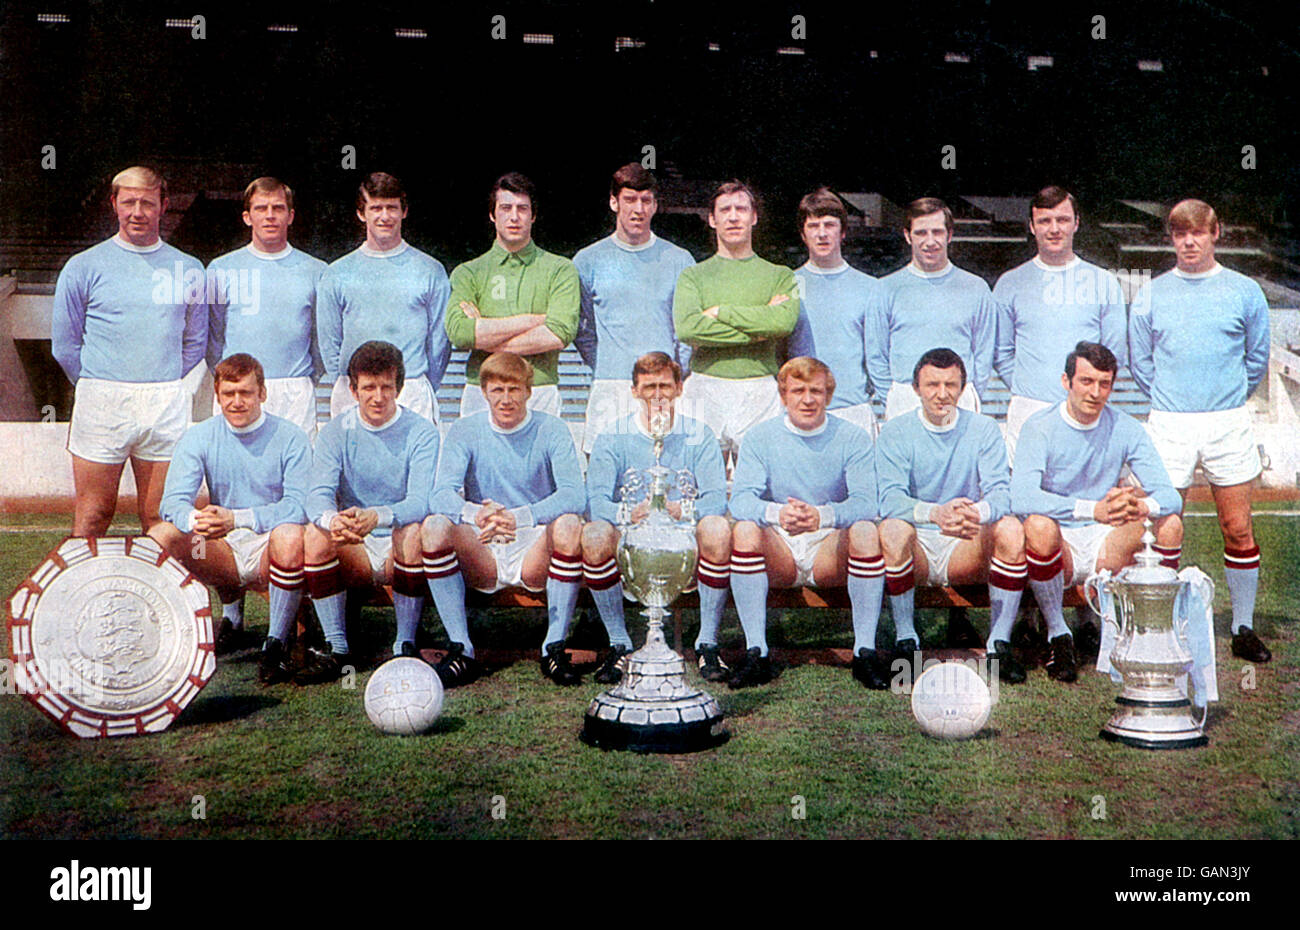 Soccer - Football League Division One - Manchester City Photocall Stock Photo